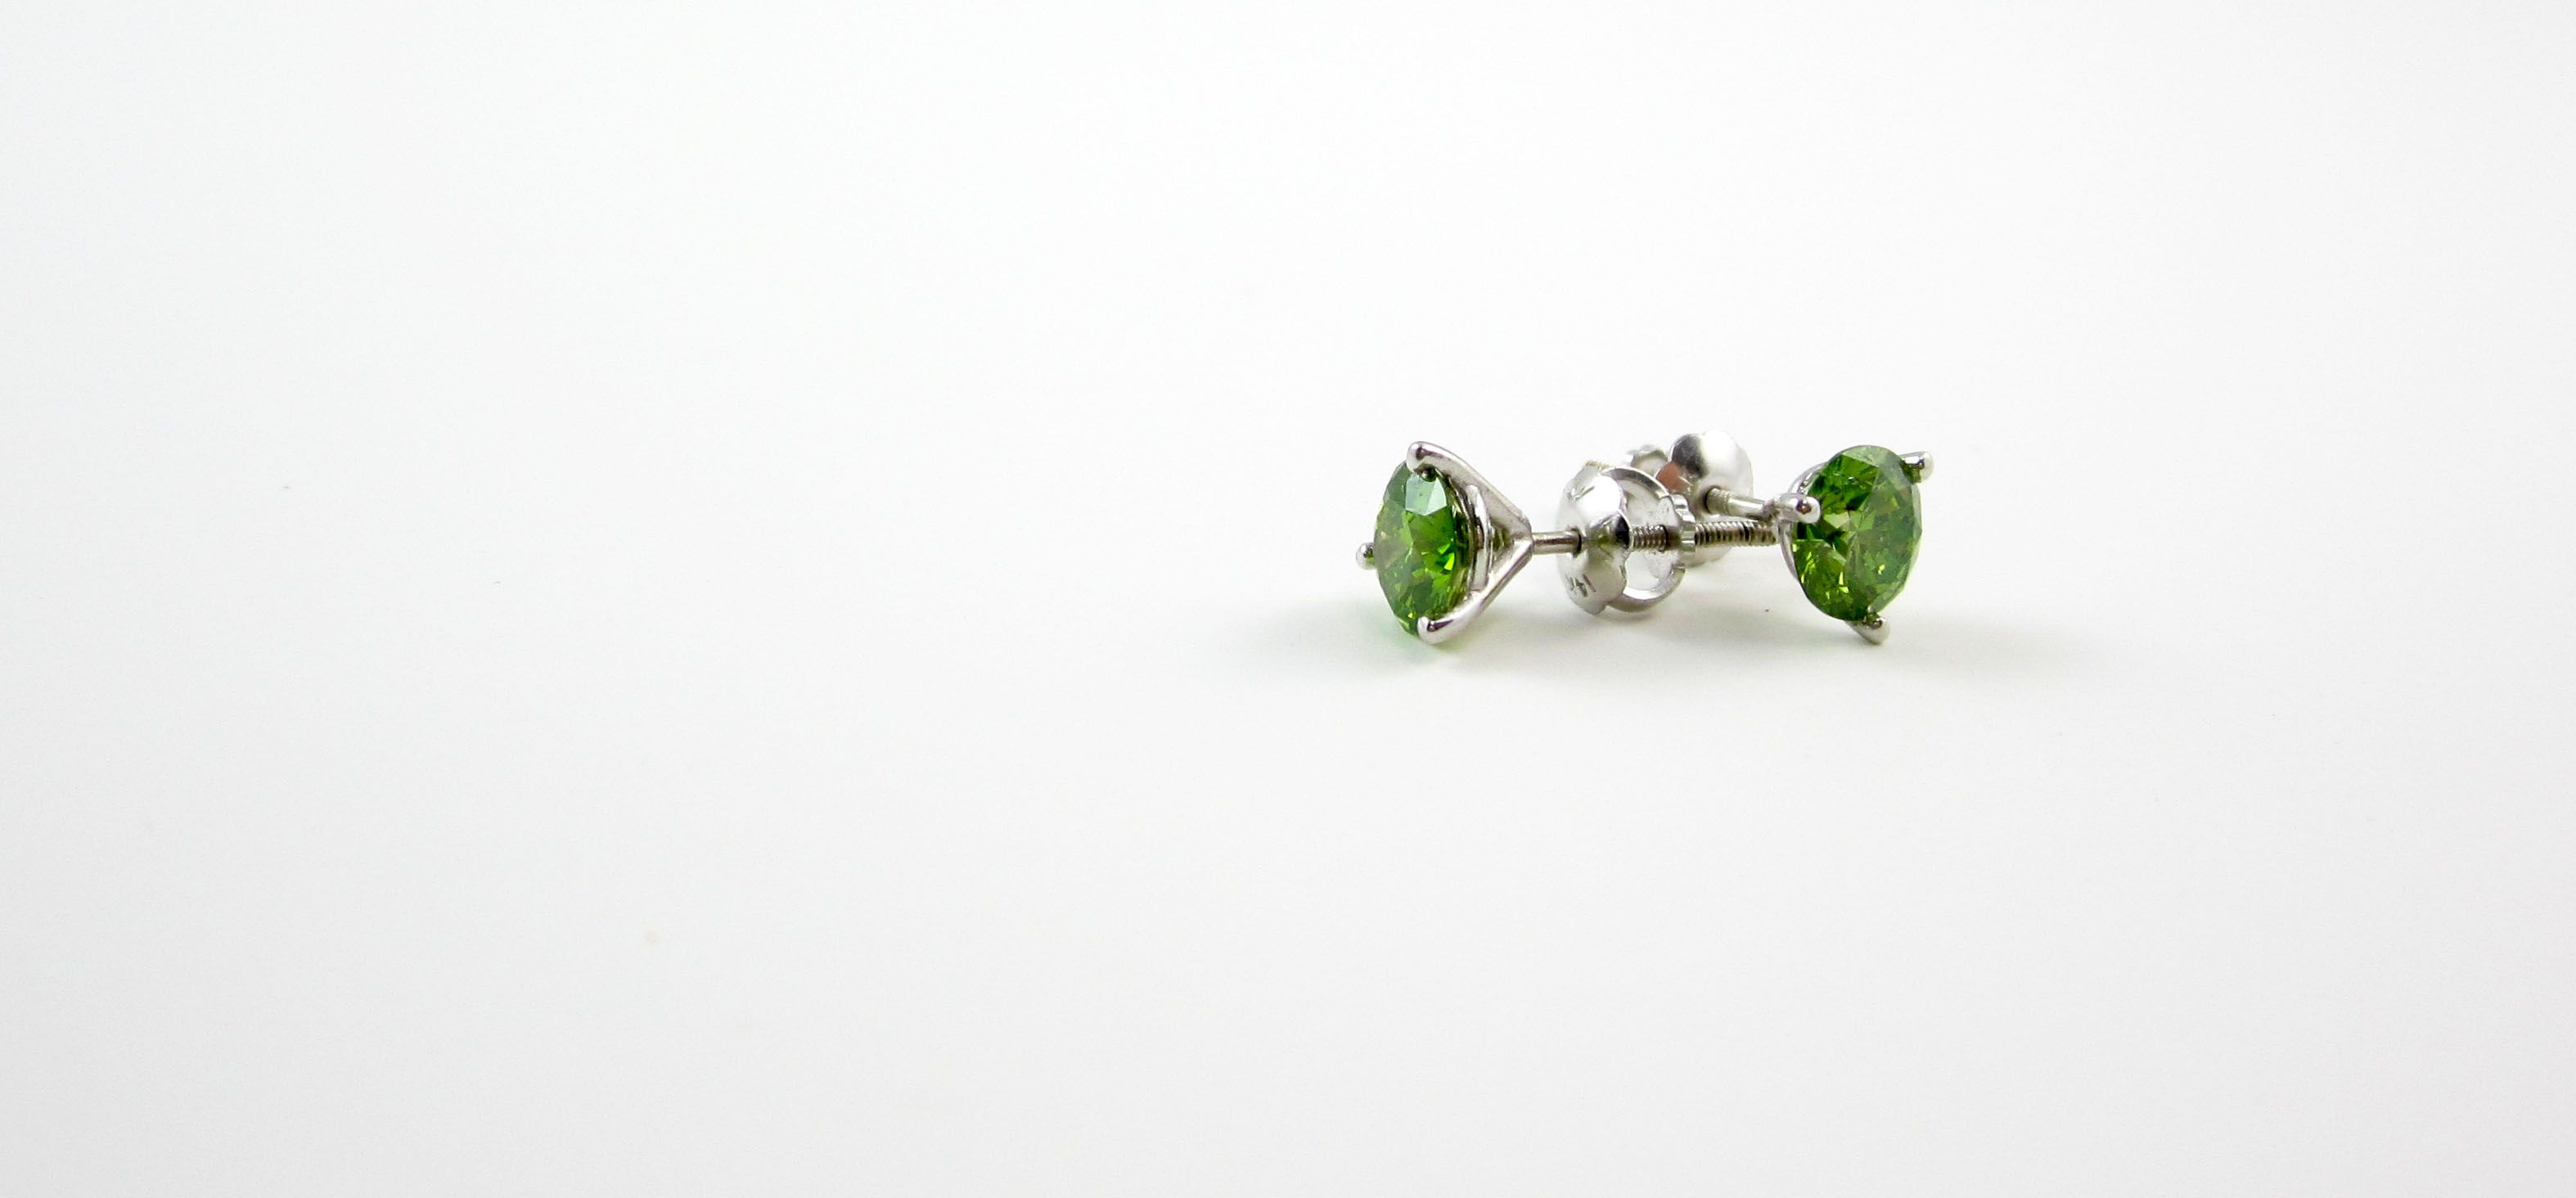 The sparkle of a diamond, the green color of paradise